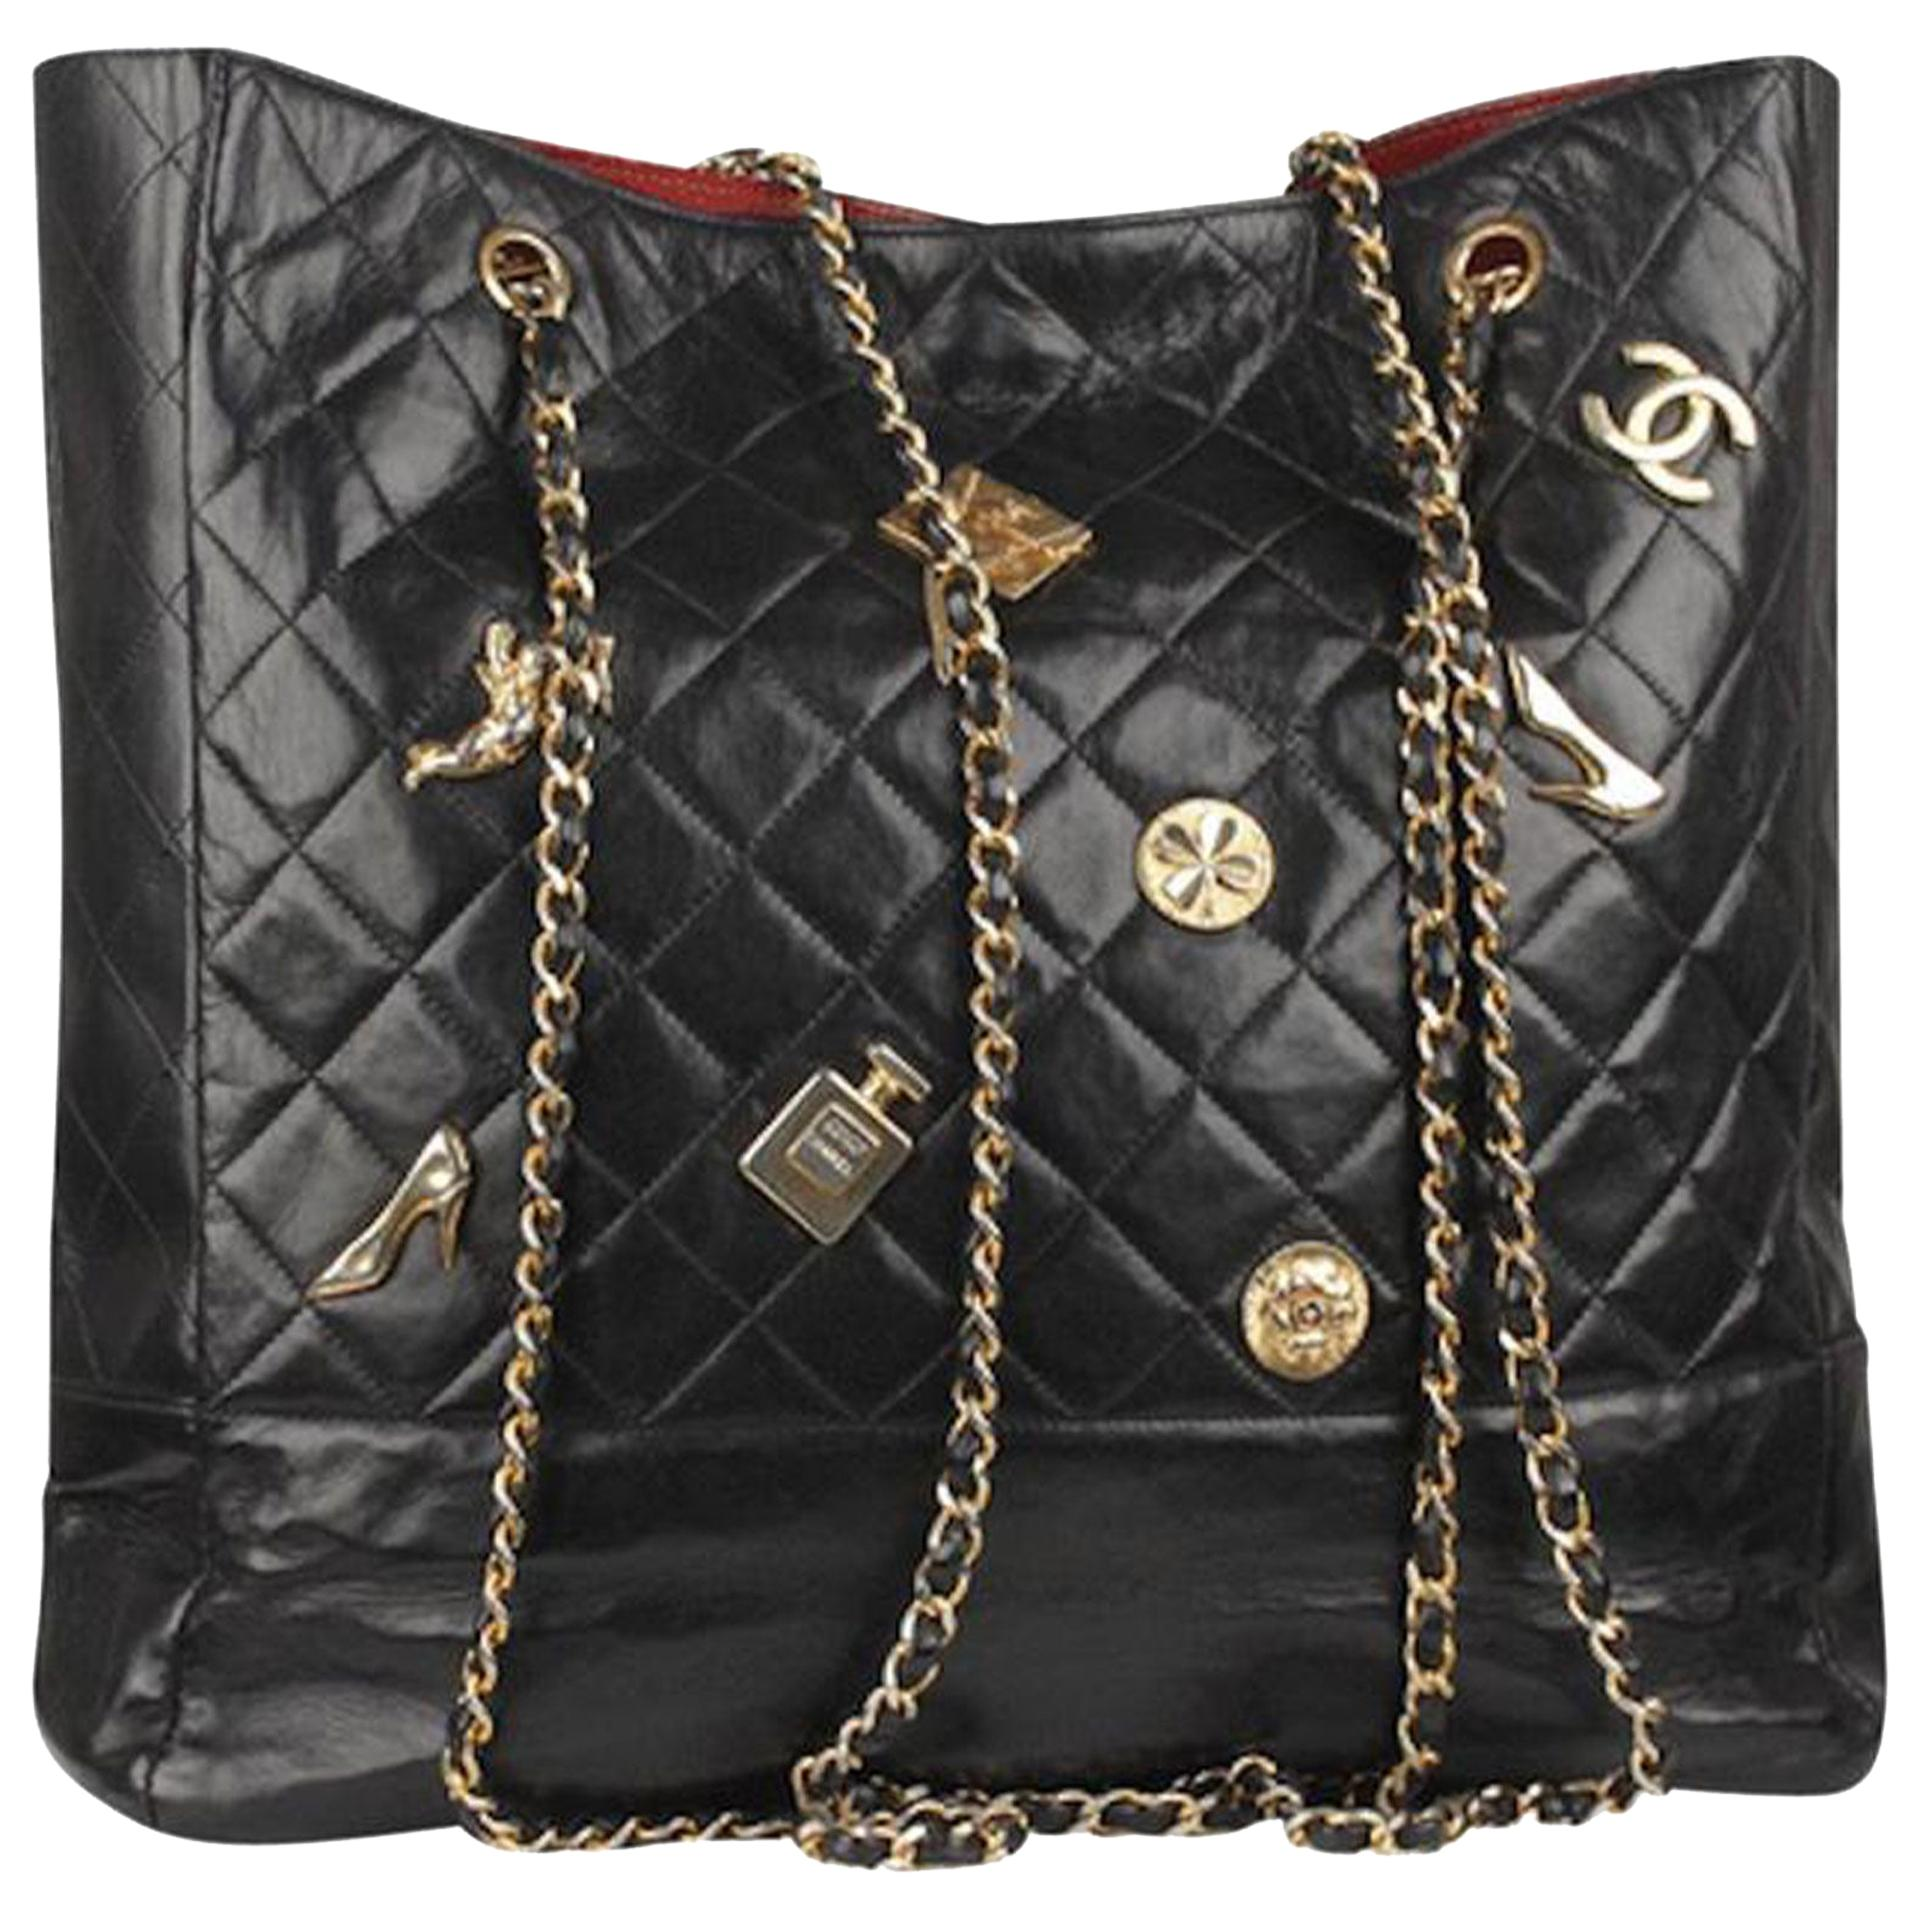 Chanel Timeless Bag Rare Vintage 1990's Limited Edition Lucky Charm Black Tote